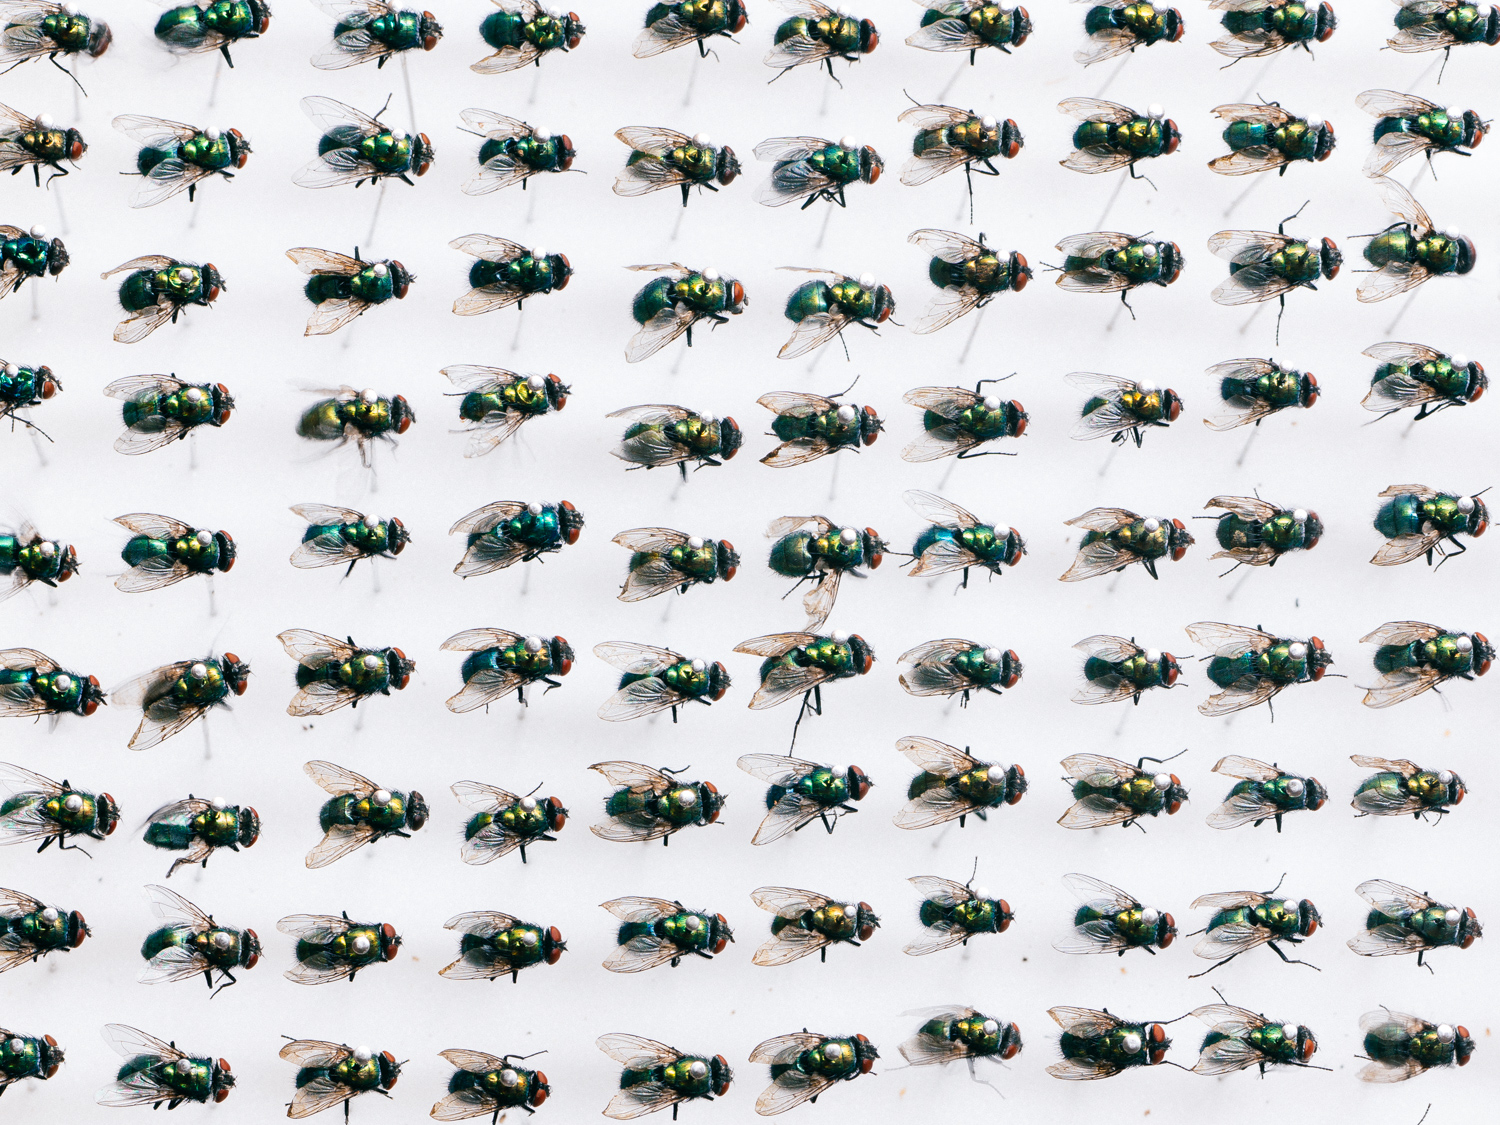 Pinned greenbottle flies ( Lucilia sericata )